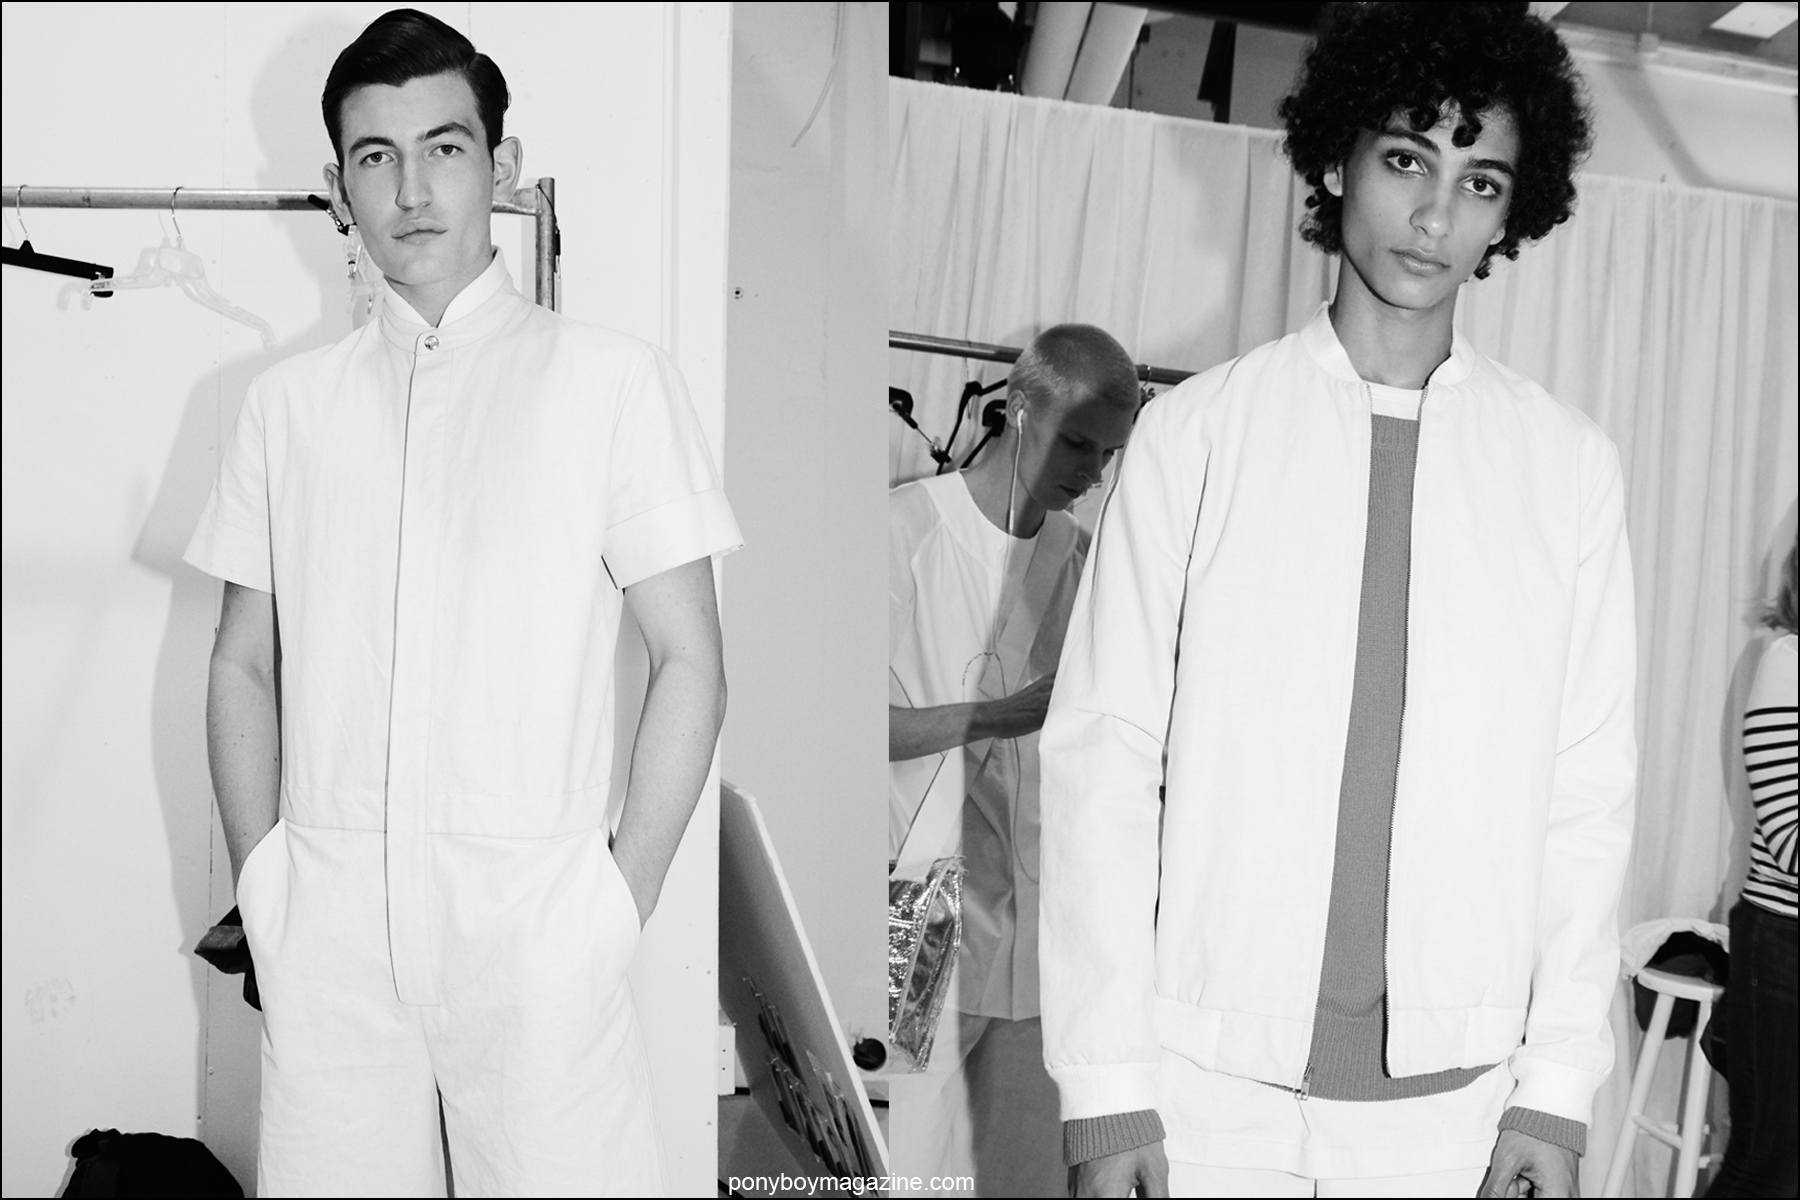 Models Dylan Hartigan and Tre Samuels snapped backstage at the Rochambeau Spring/Summer 2016 menswear show by Alexander Thompson for Ponyboy magazine NY.